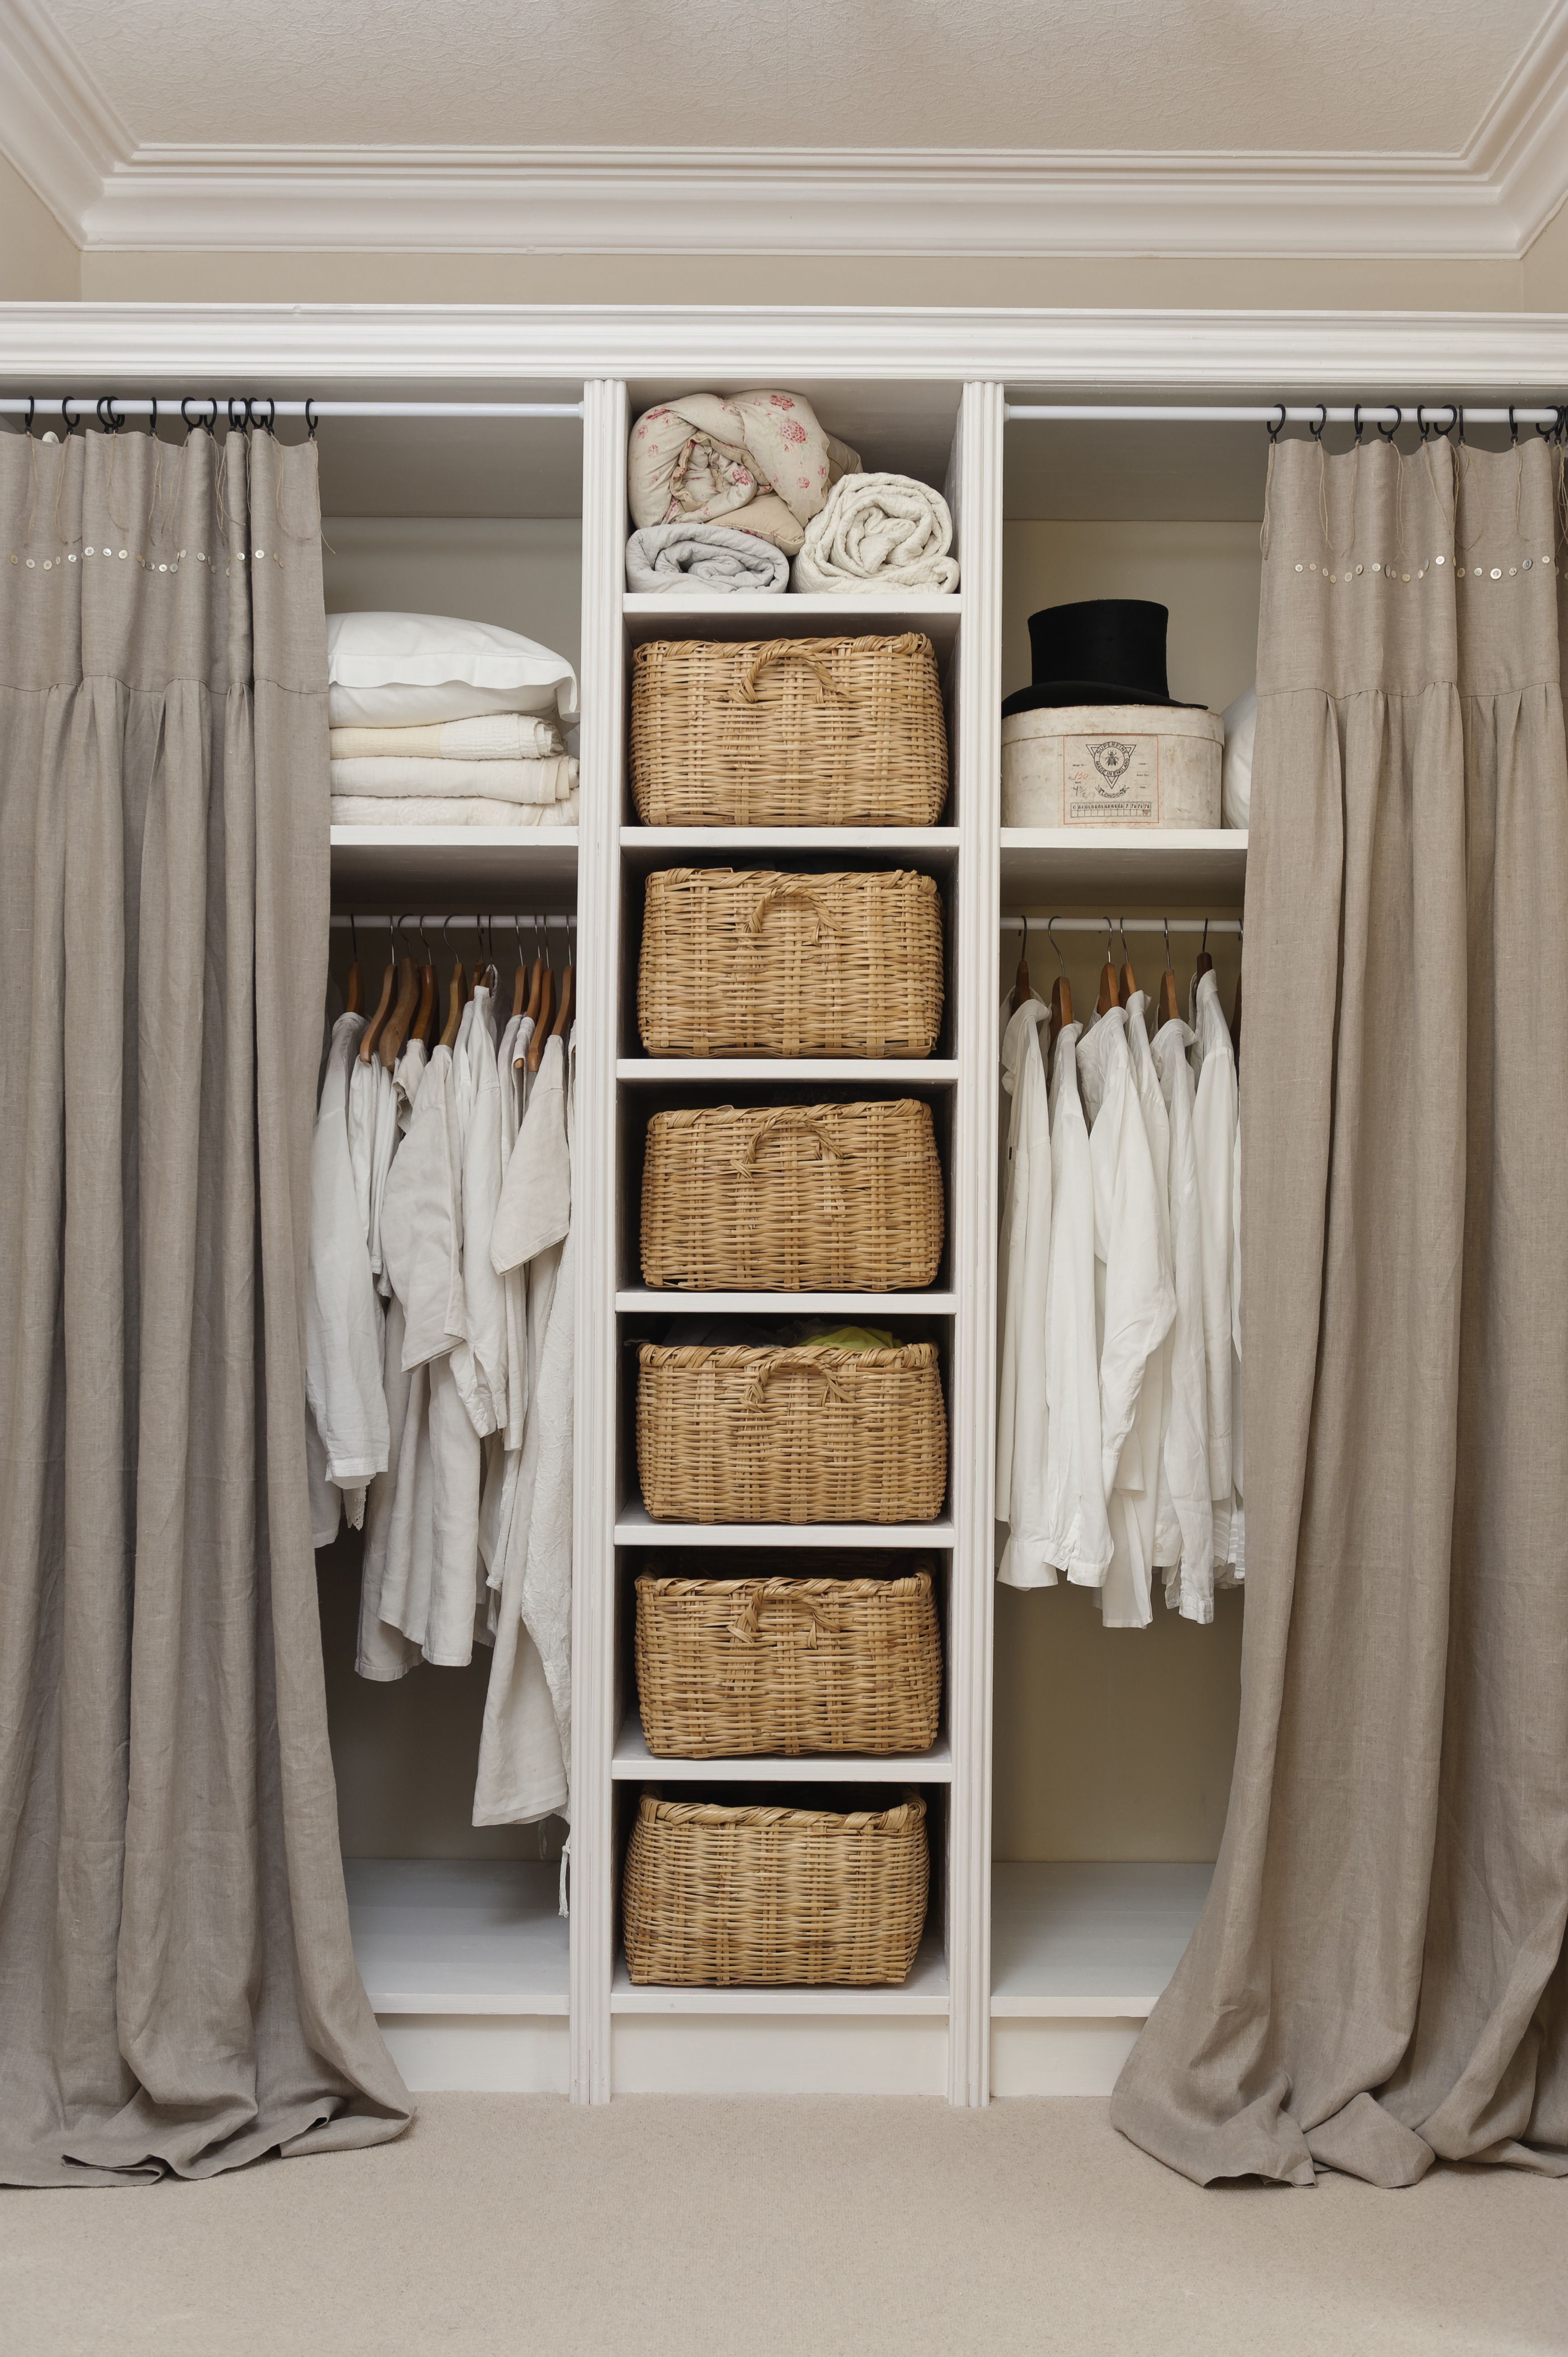 storage in design wall space doors hanging closet bedroom size with organizer linen full easy of ikea shelf for effective dresser wardrobe your small built ideas narrow cupboard openings open door wide